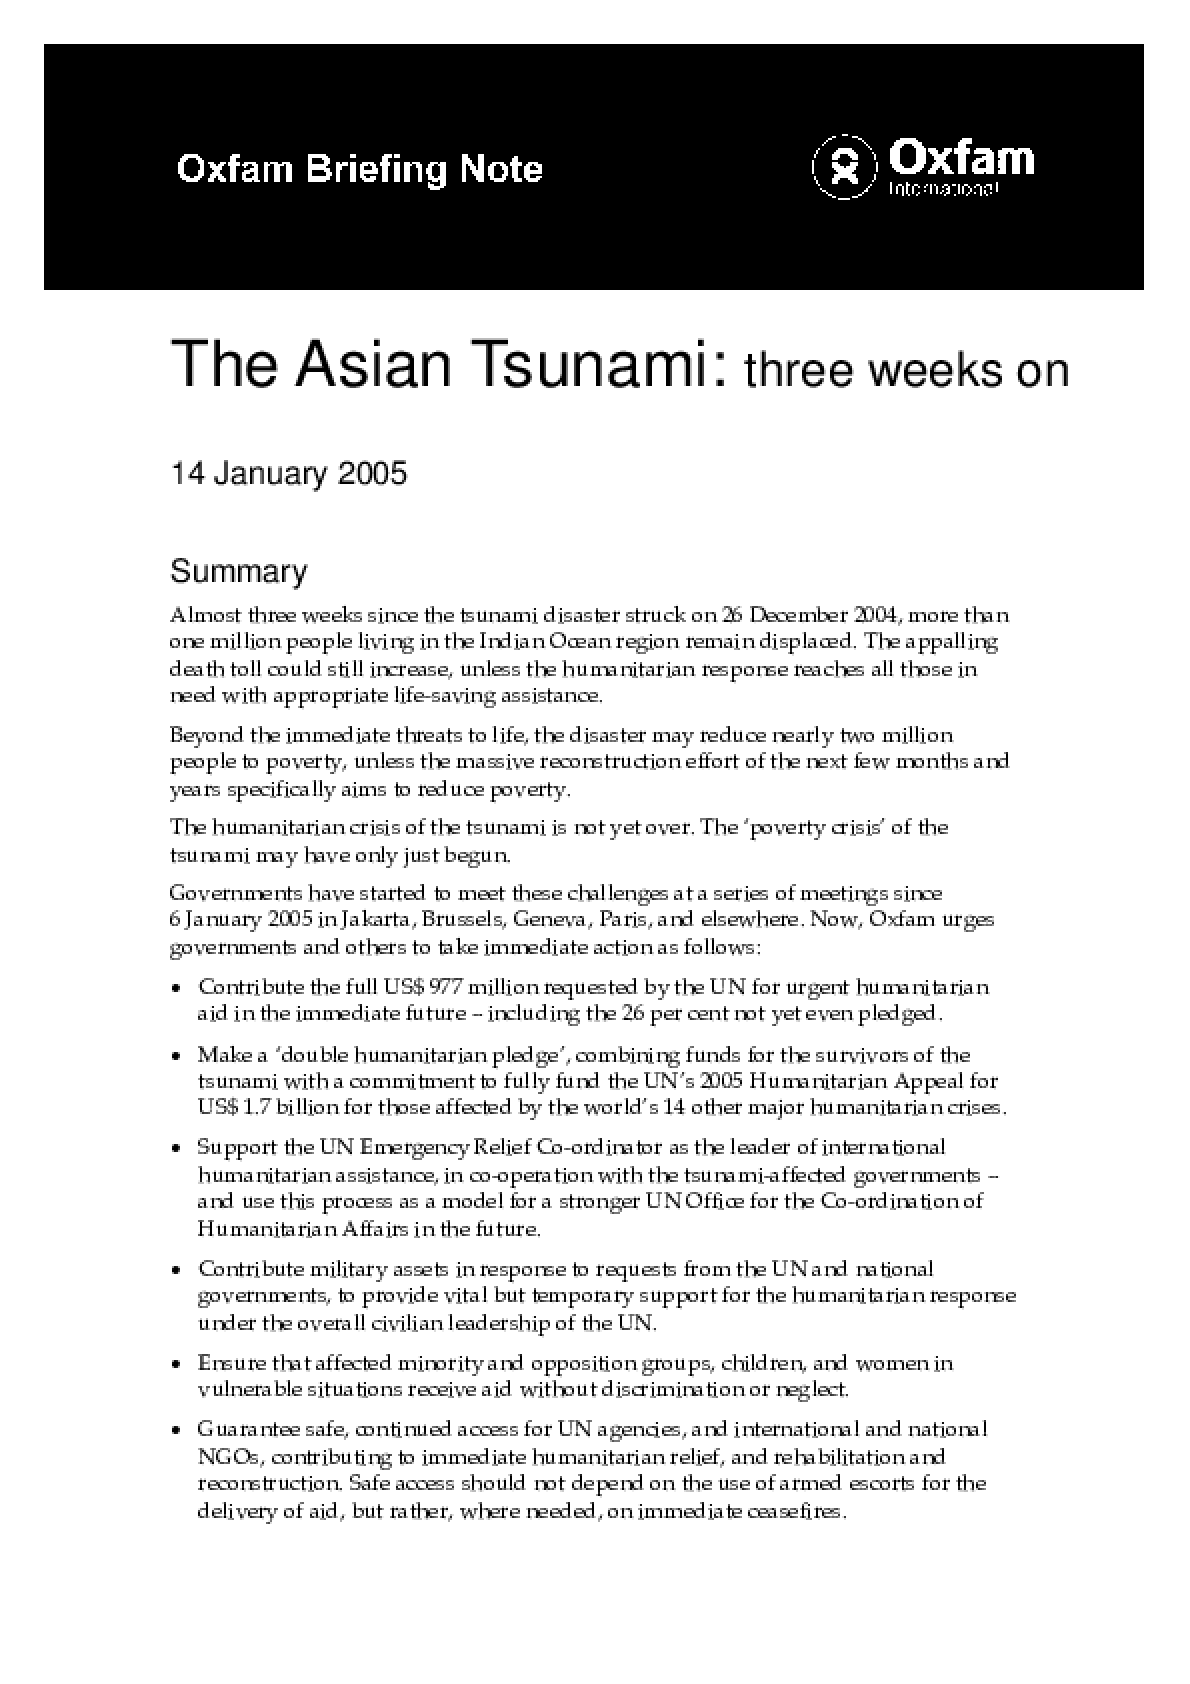 The Asian Tsunami: Three weeks on